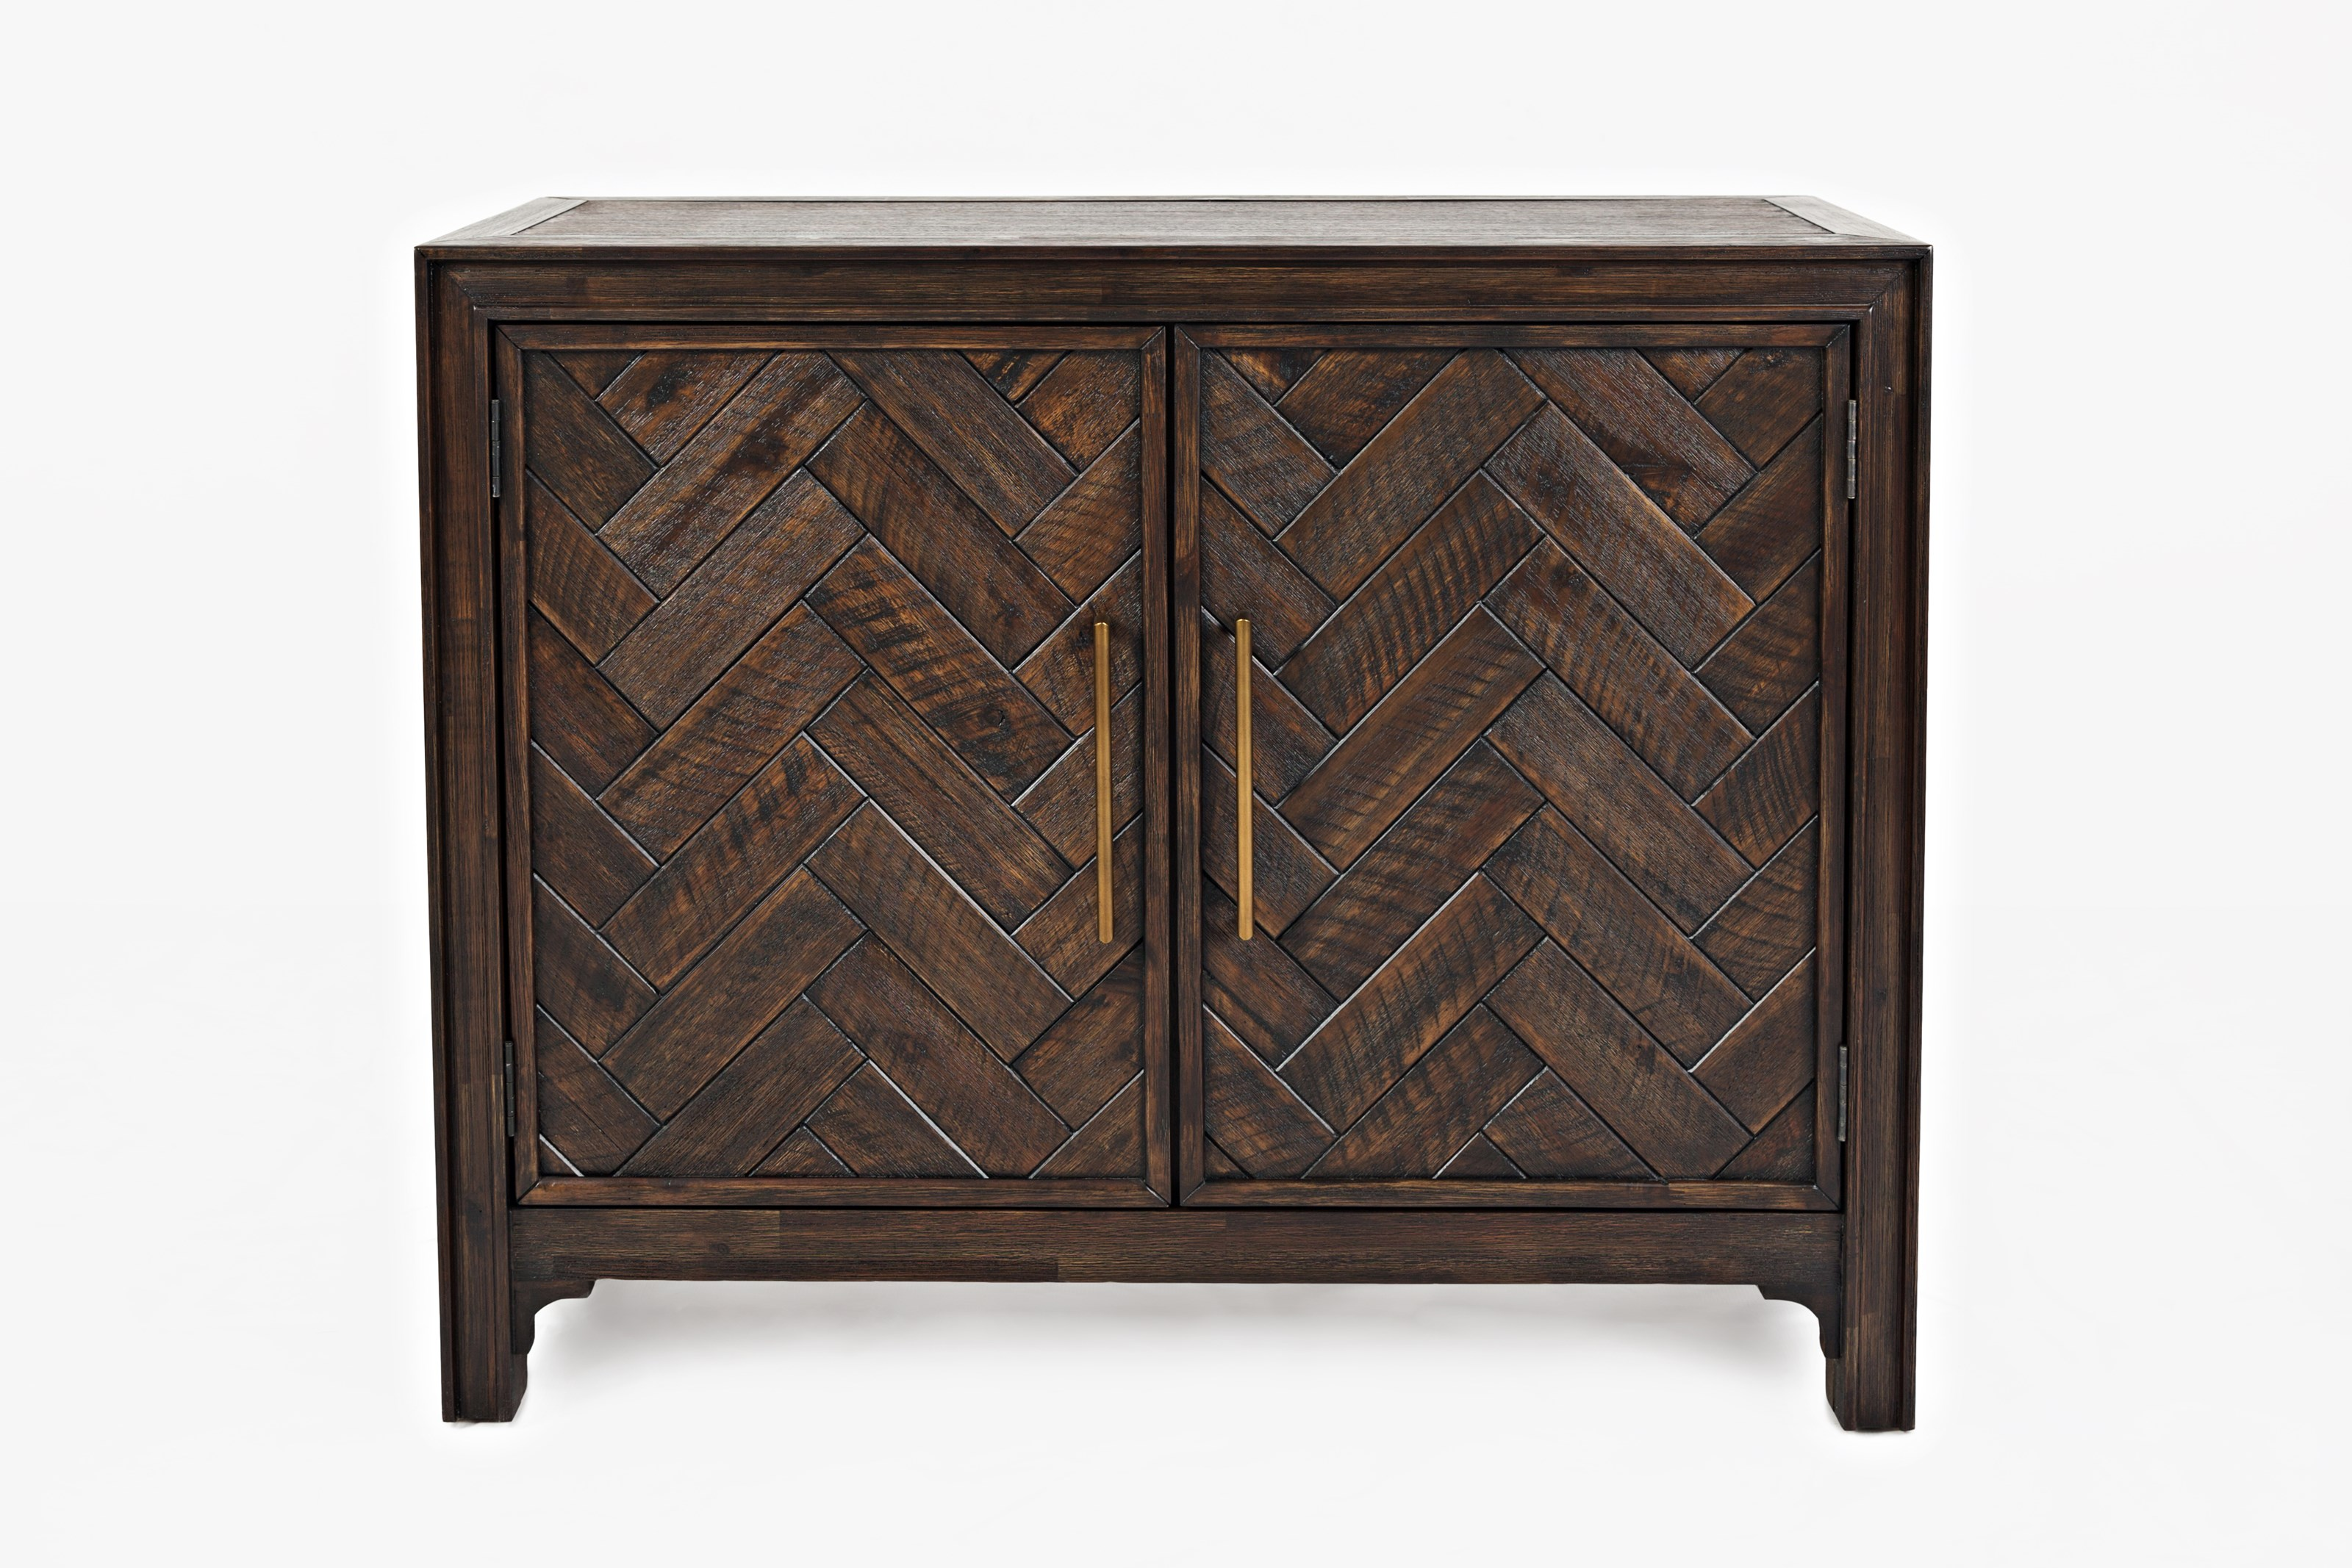 Gramercy 2 Door Accent Cabinet by Jofran at Beck's Furniture